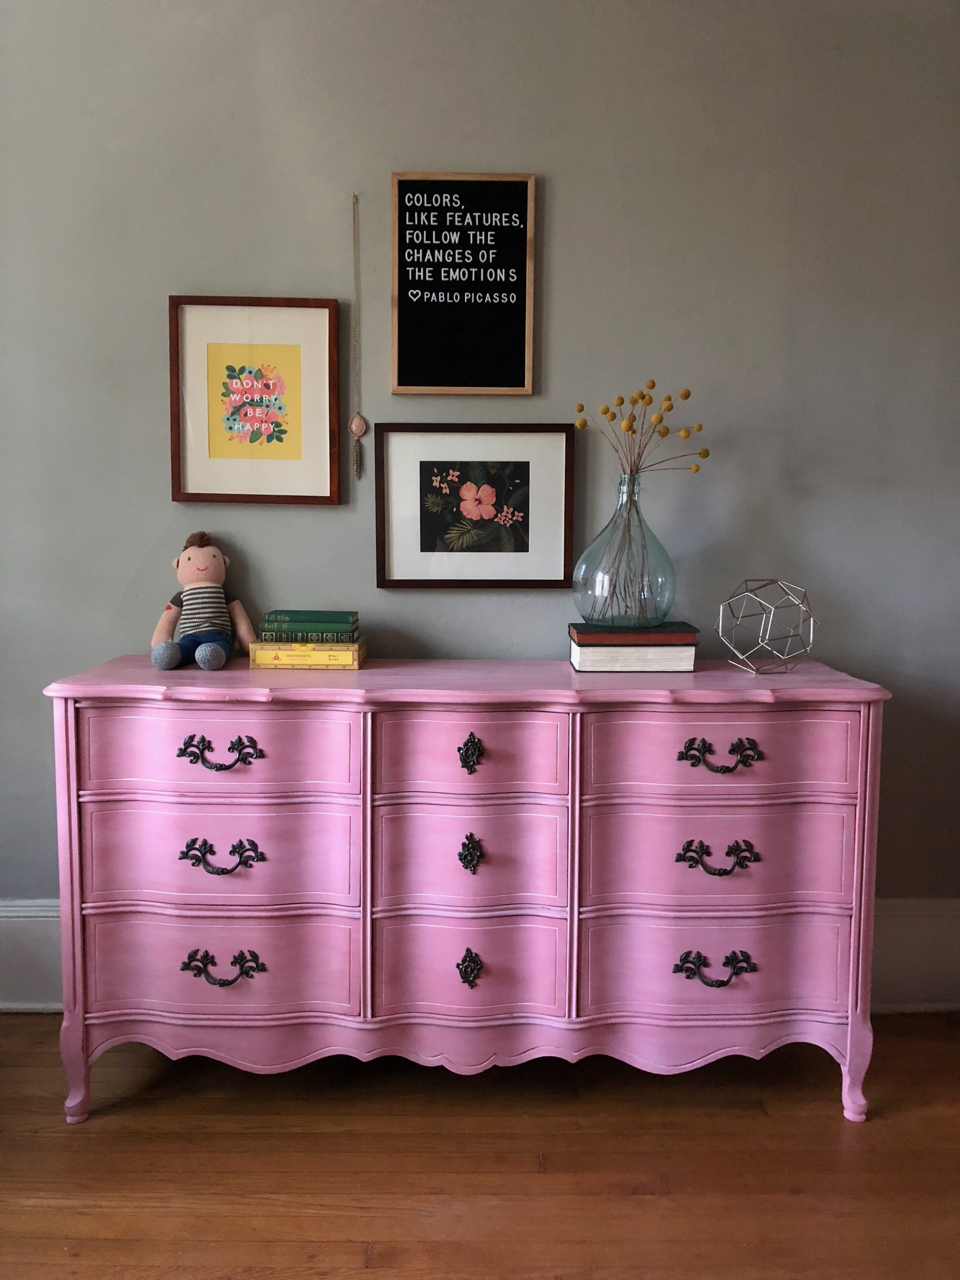 jo-torrijos-a-simpler-design-atlanta-painted-furniture-annie-sloan-pink-dresser-french-provincial-14.jpg